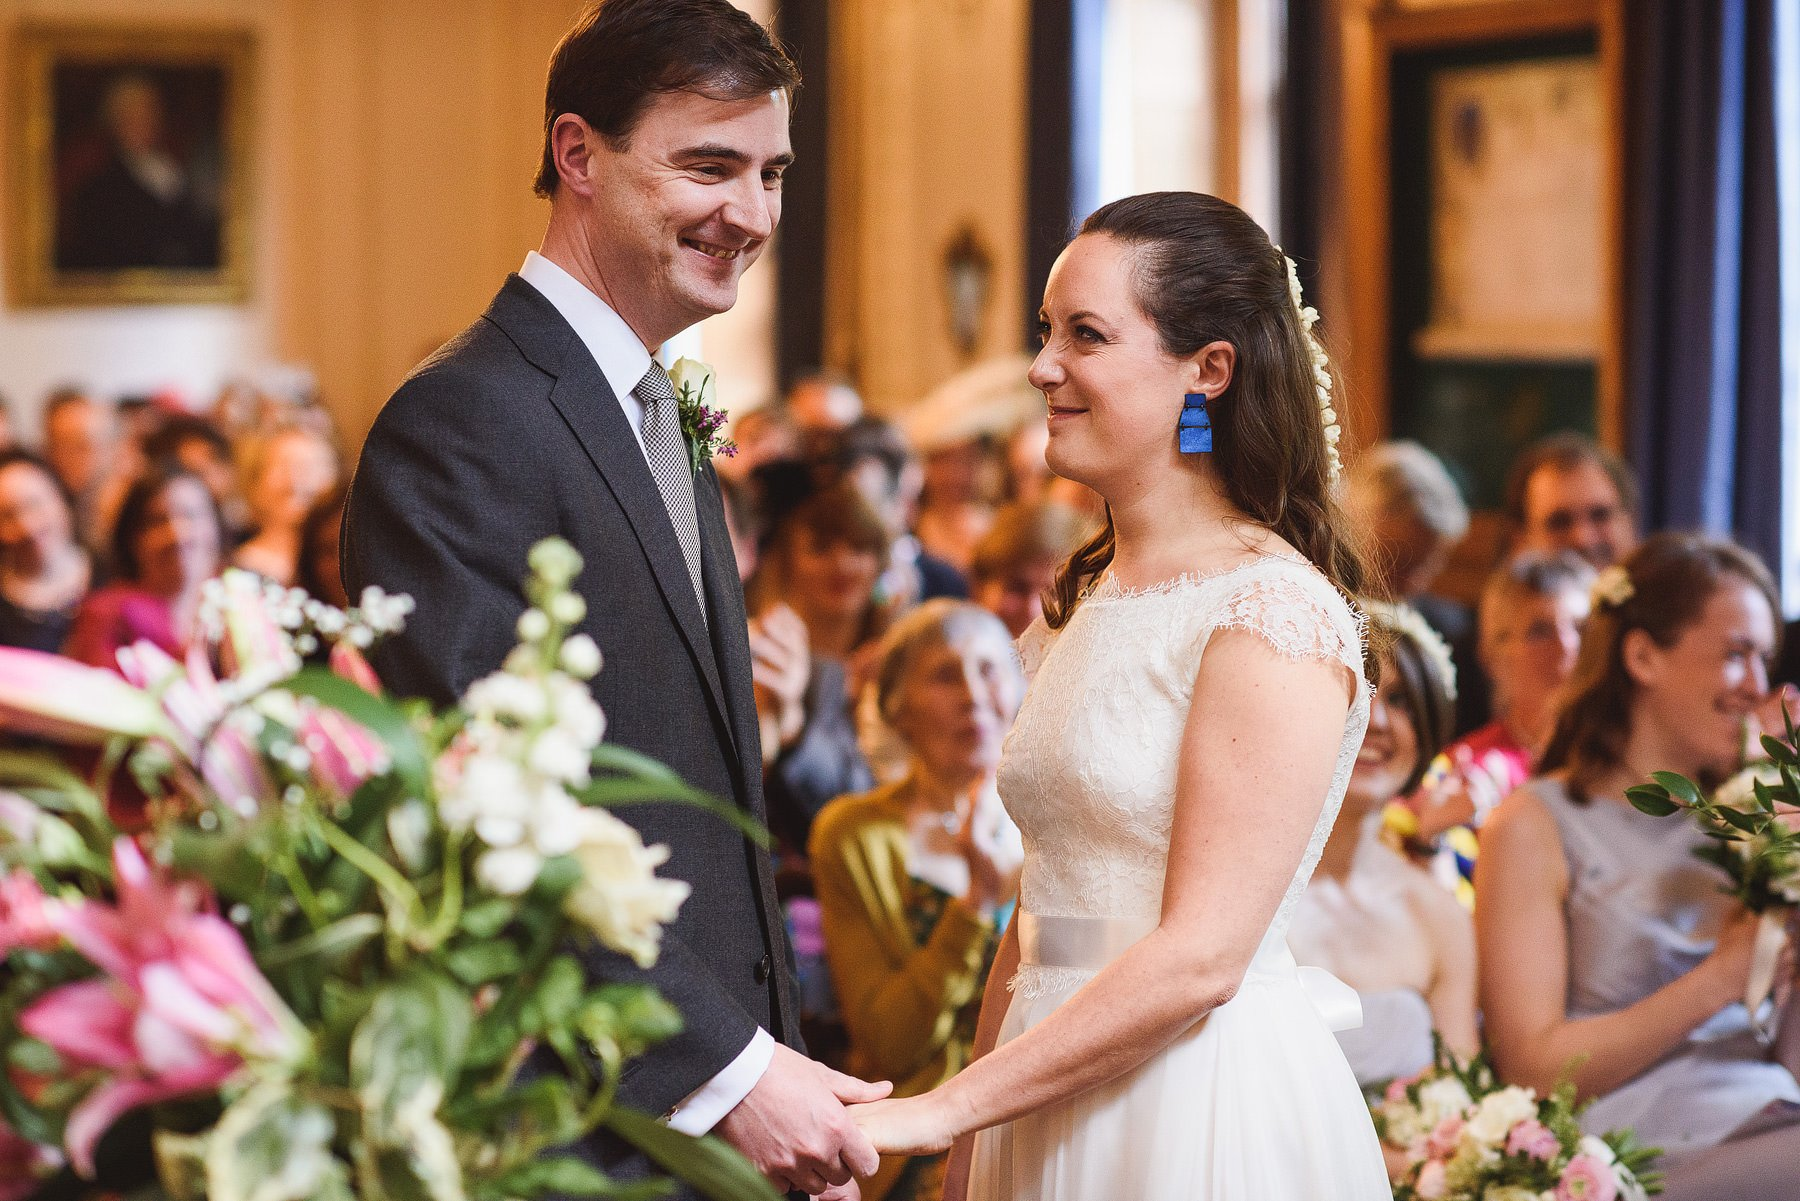 a wedding at stationers hall in london